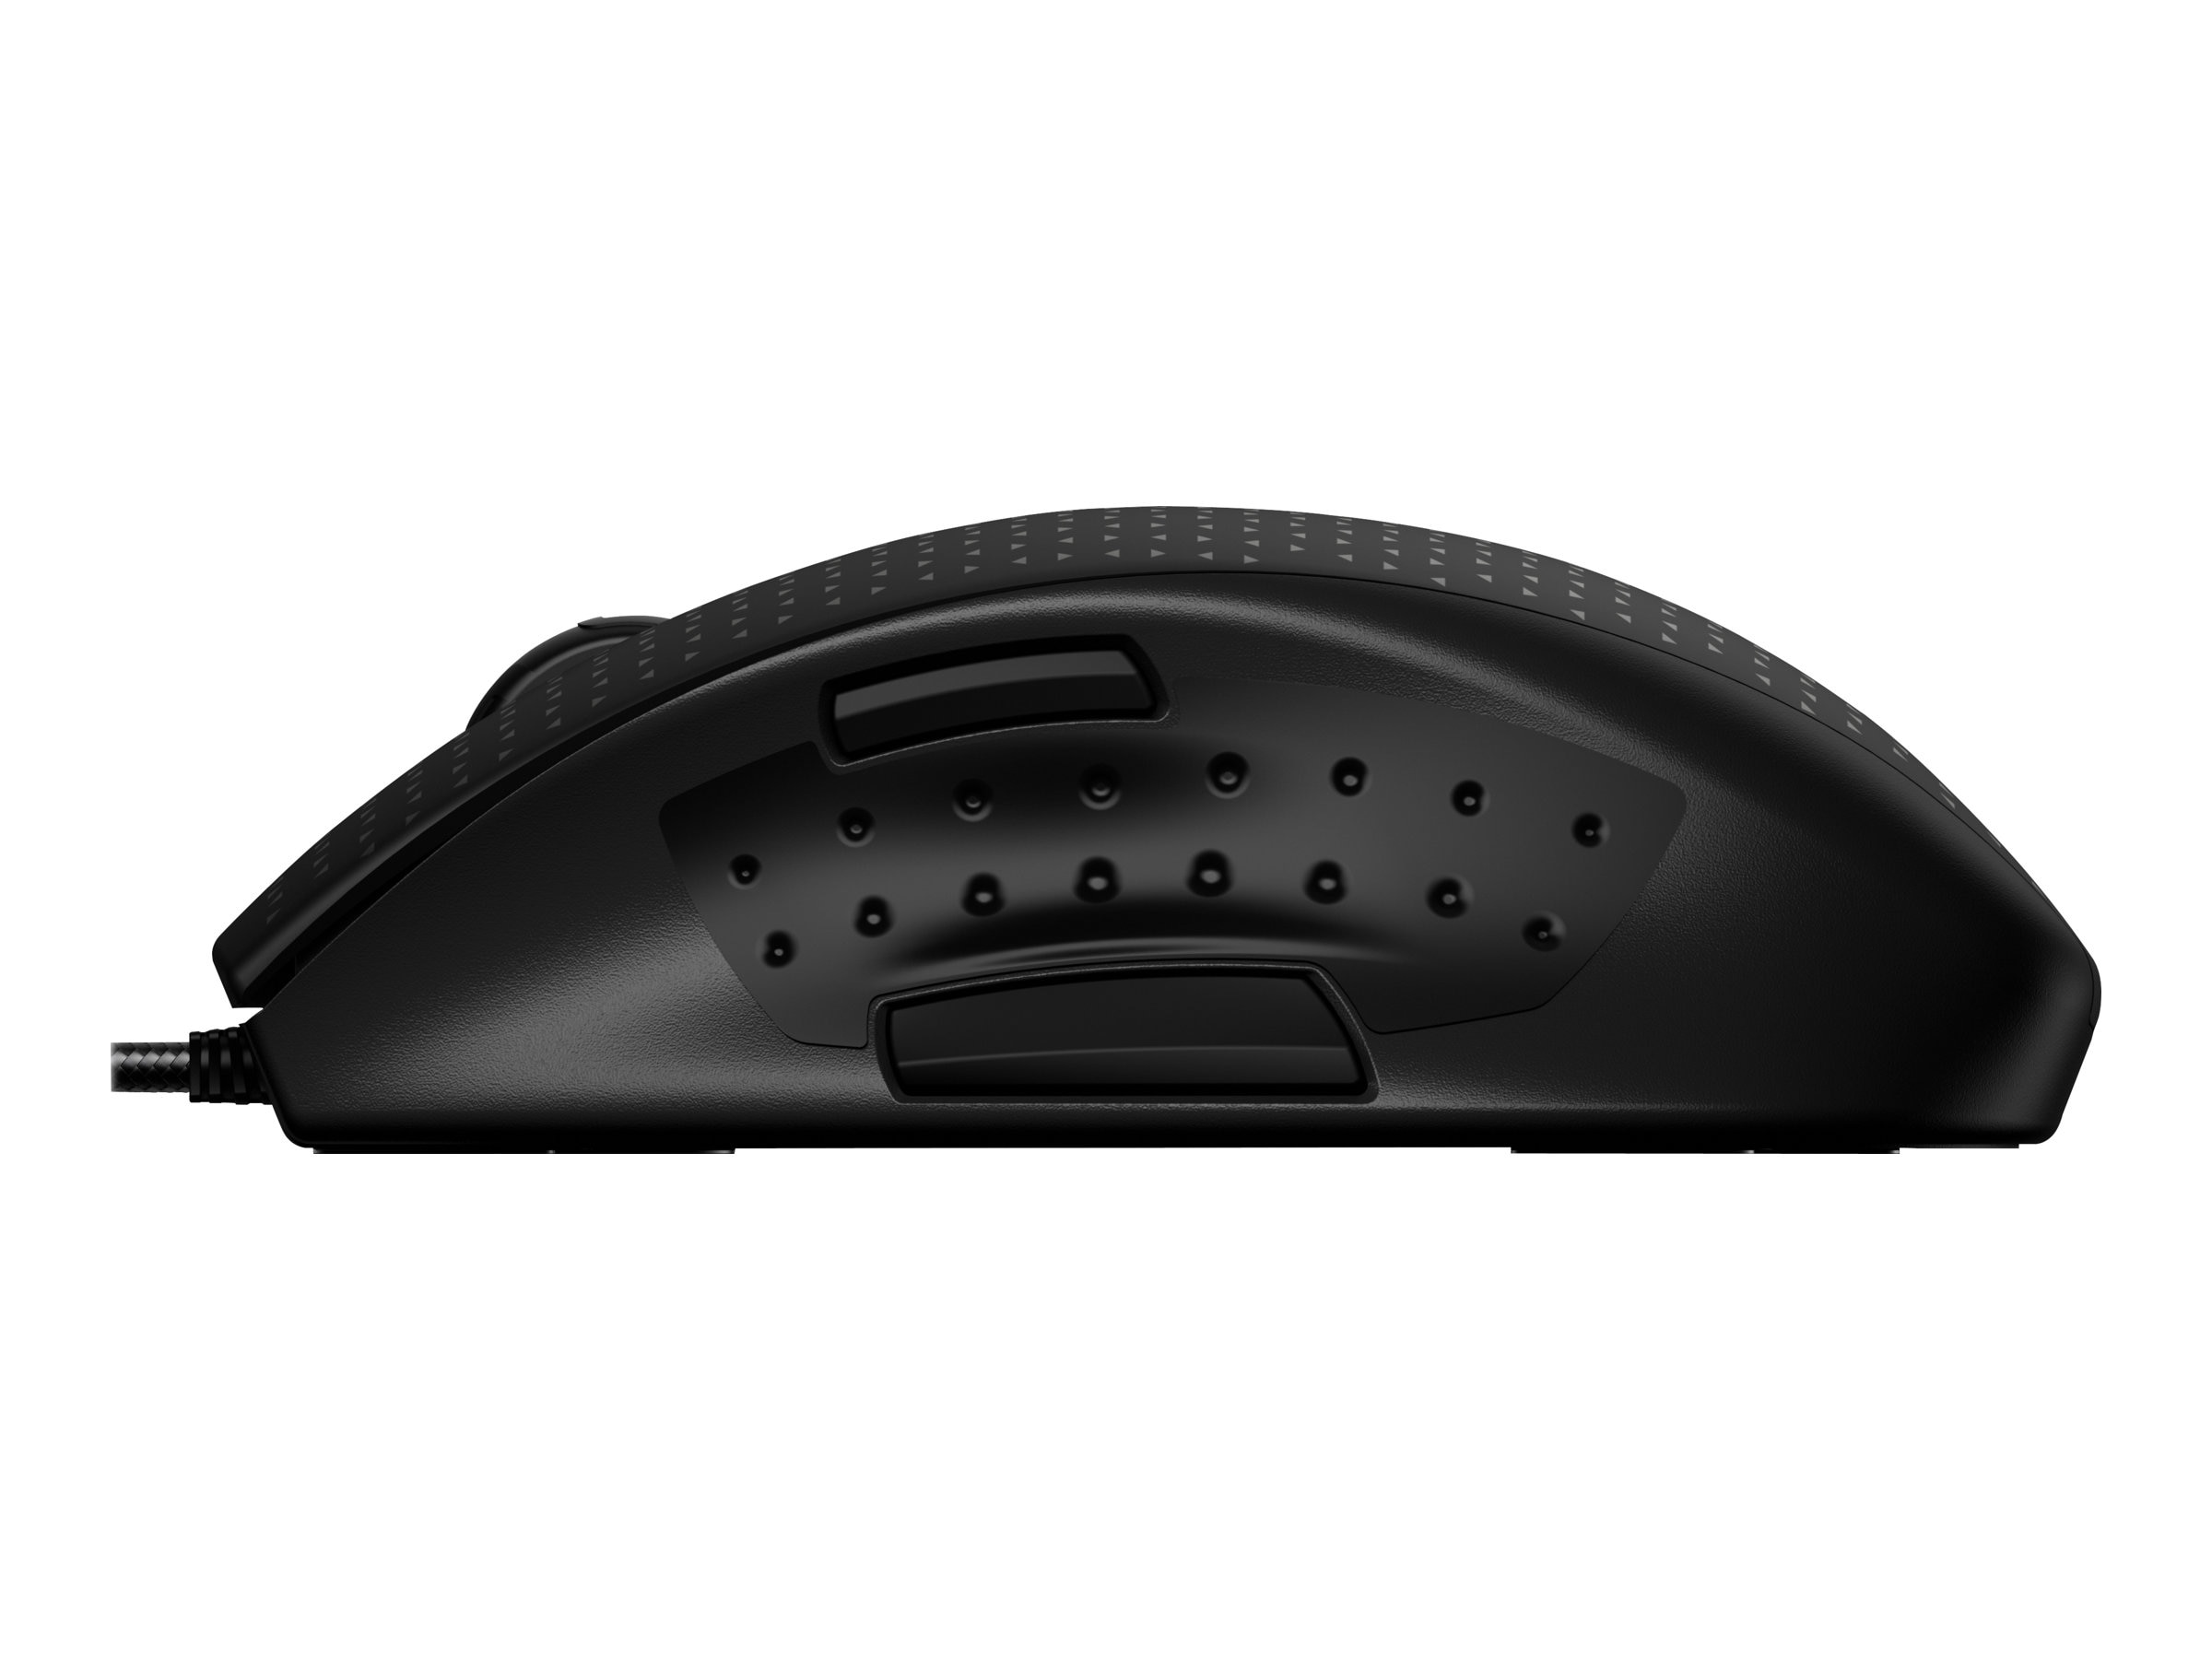 HP X9000 Gaming Mouse, J6N88AA#ABL